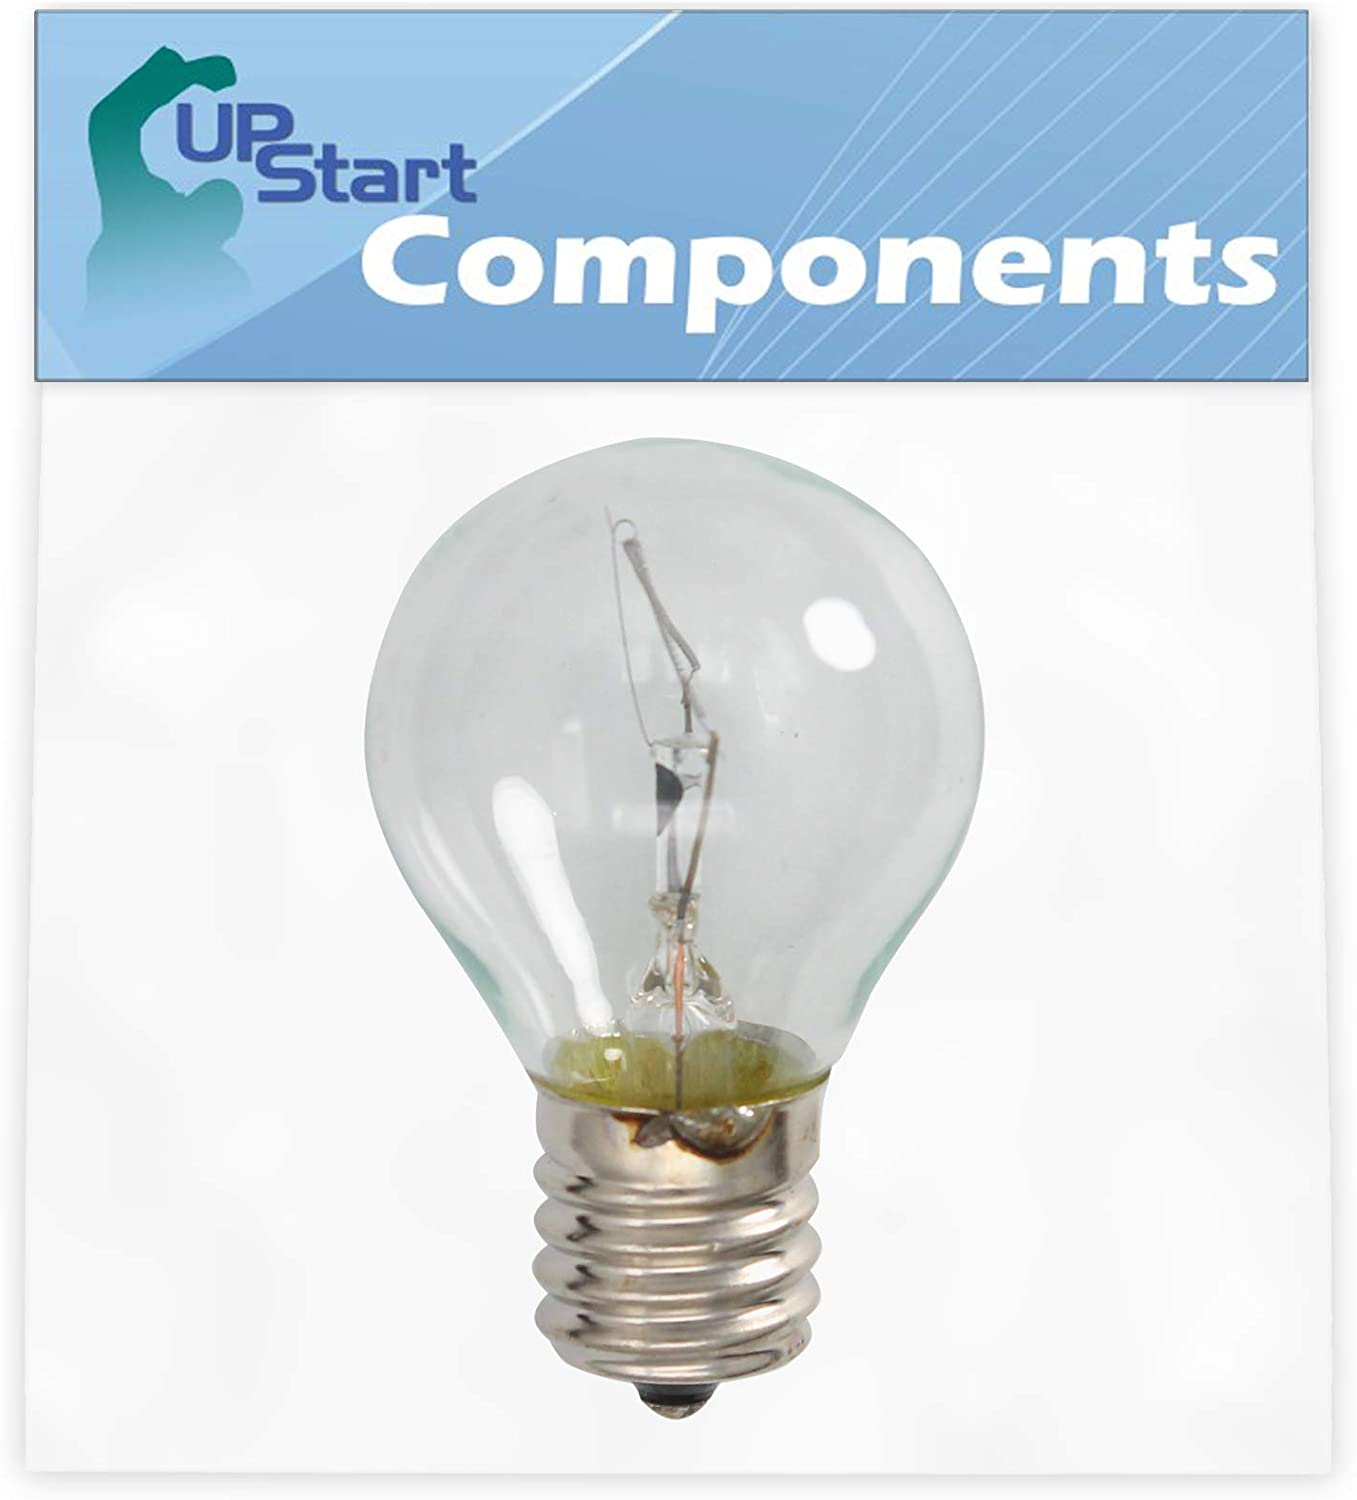 8206443 Light Bulb New life Replacement for Kenmore Ranking TOP3 Sears Mic Whirlpool